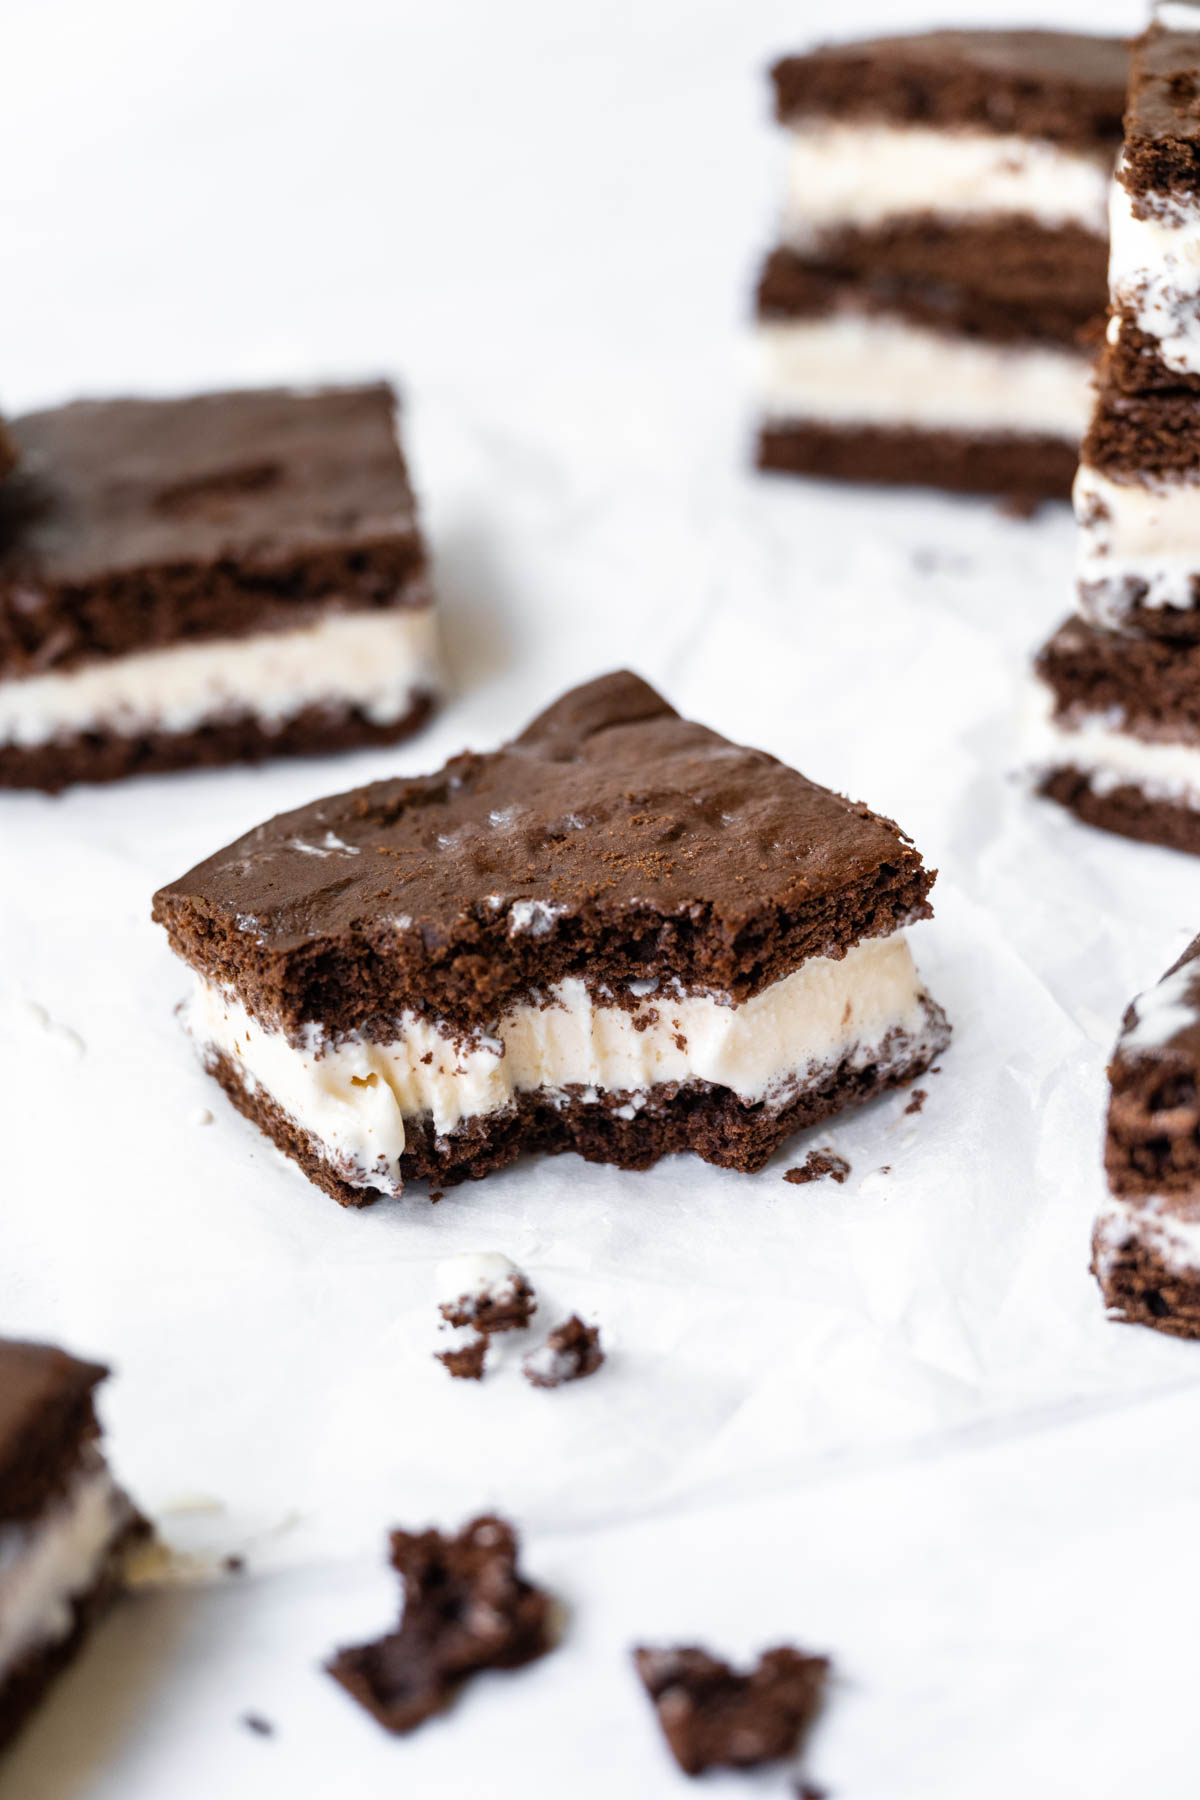 Ice Cream Sandwiches on parchment with bite taken